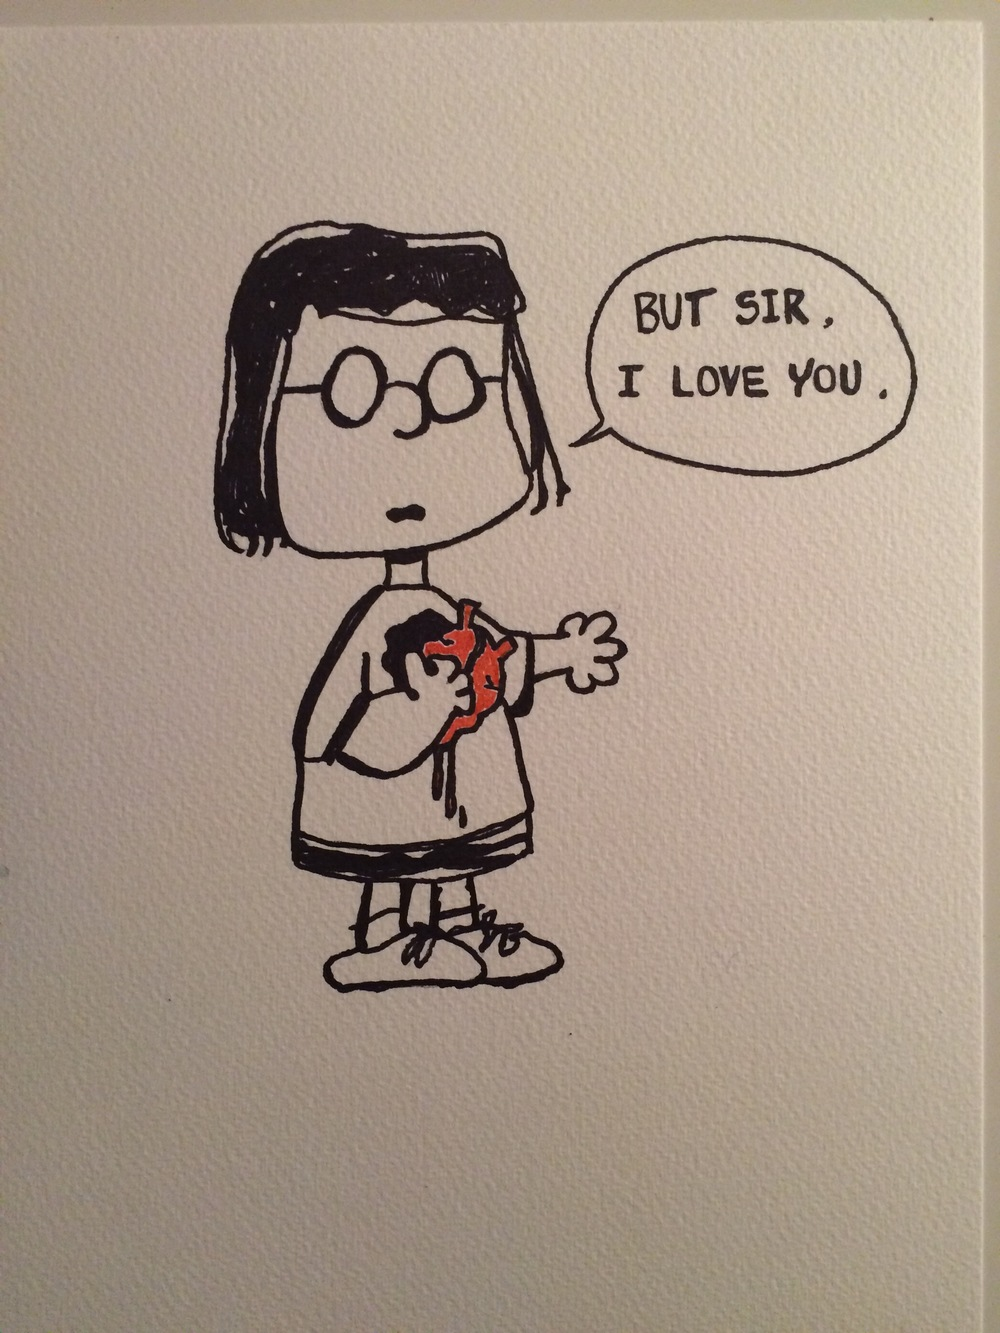 Marcie the queen of unrequited love. Emily Catherine Illustration.